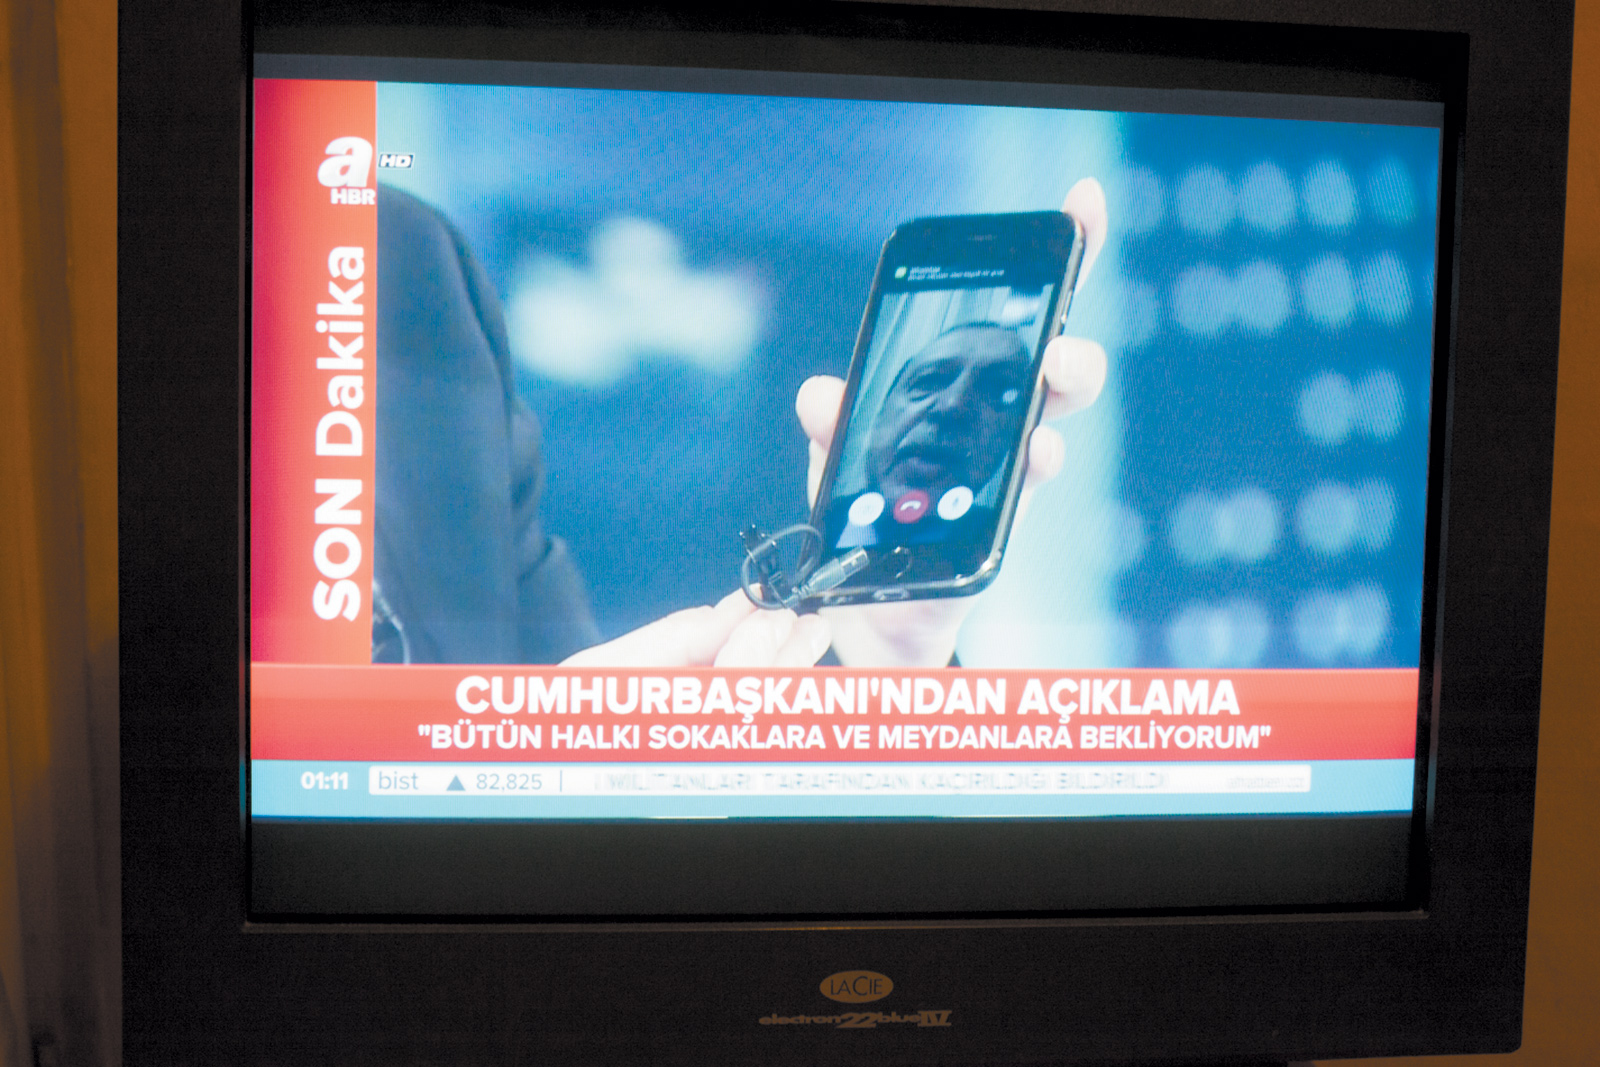 President Erdoğan 'calling everyone to the streets and city squares' in a televised appeal to the Turkish public via a smartphone during the attempted coup, July 2016